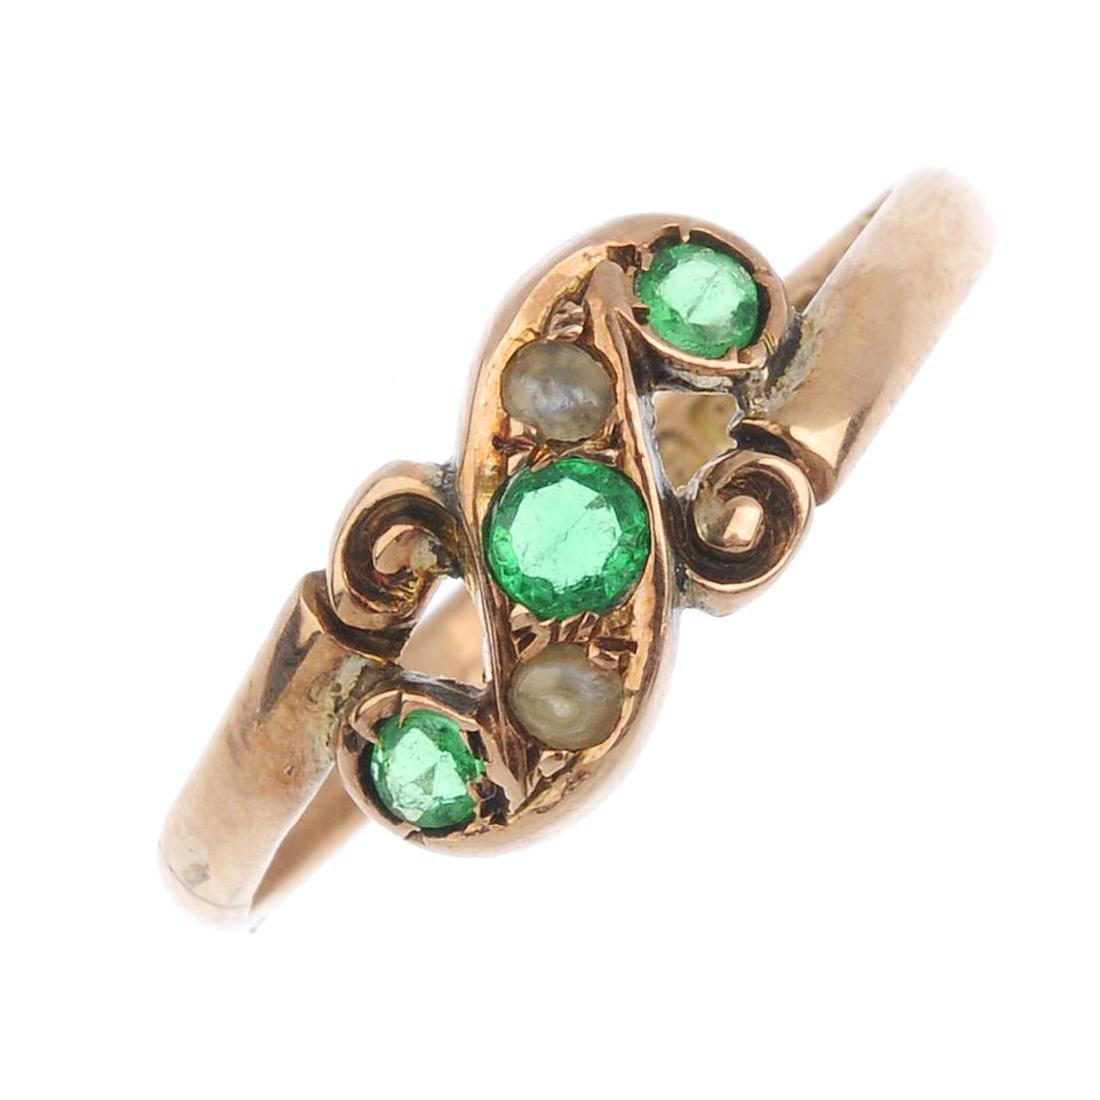 An Edwardian 9ct gold gem-set ring. The circular-shape